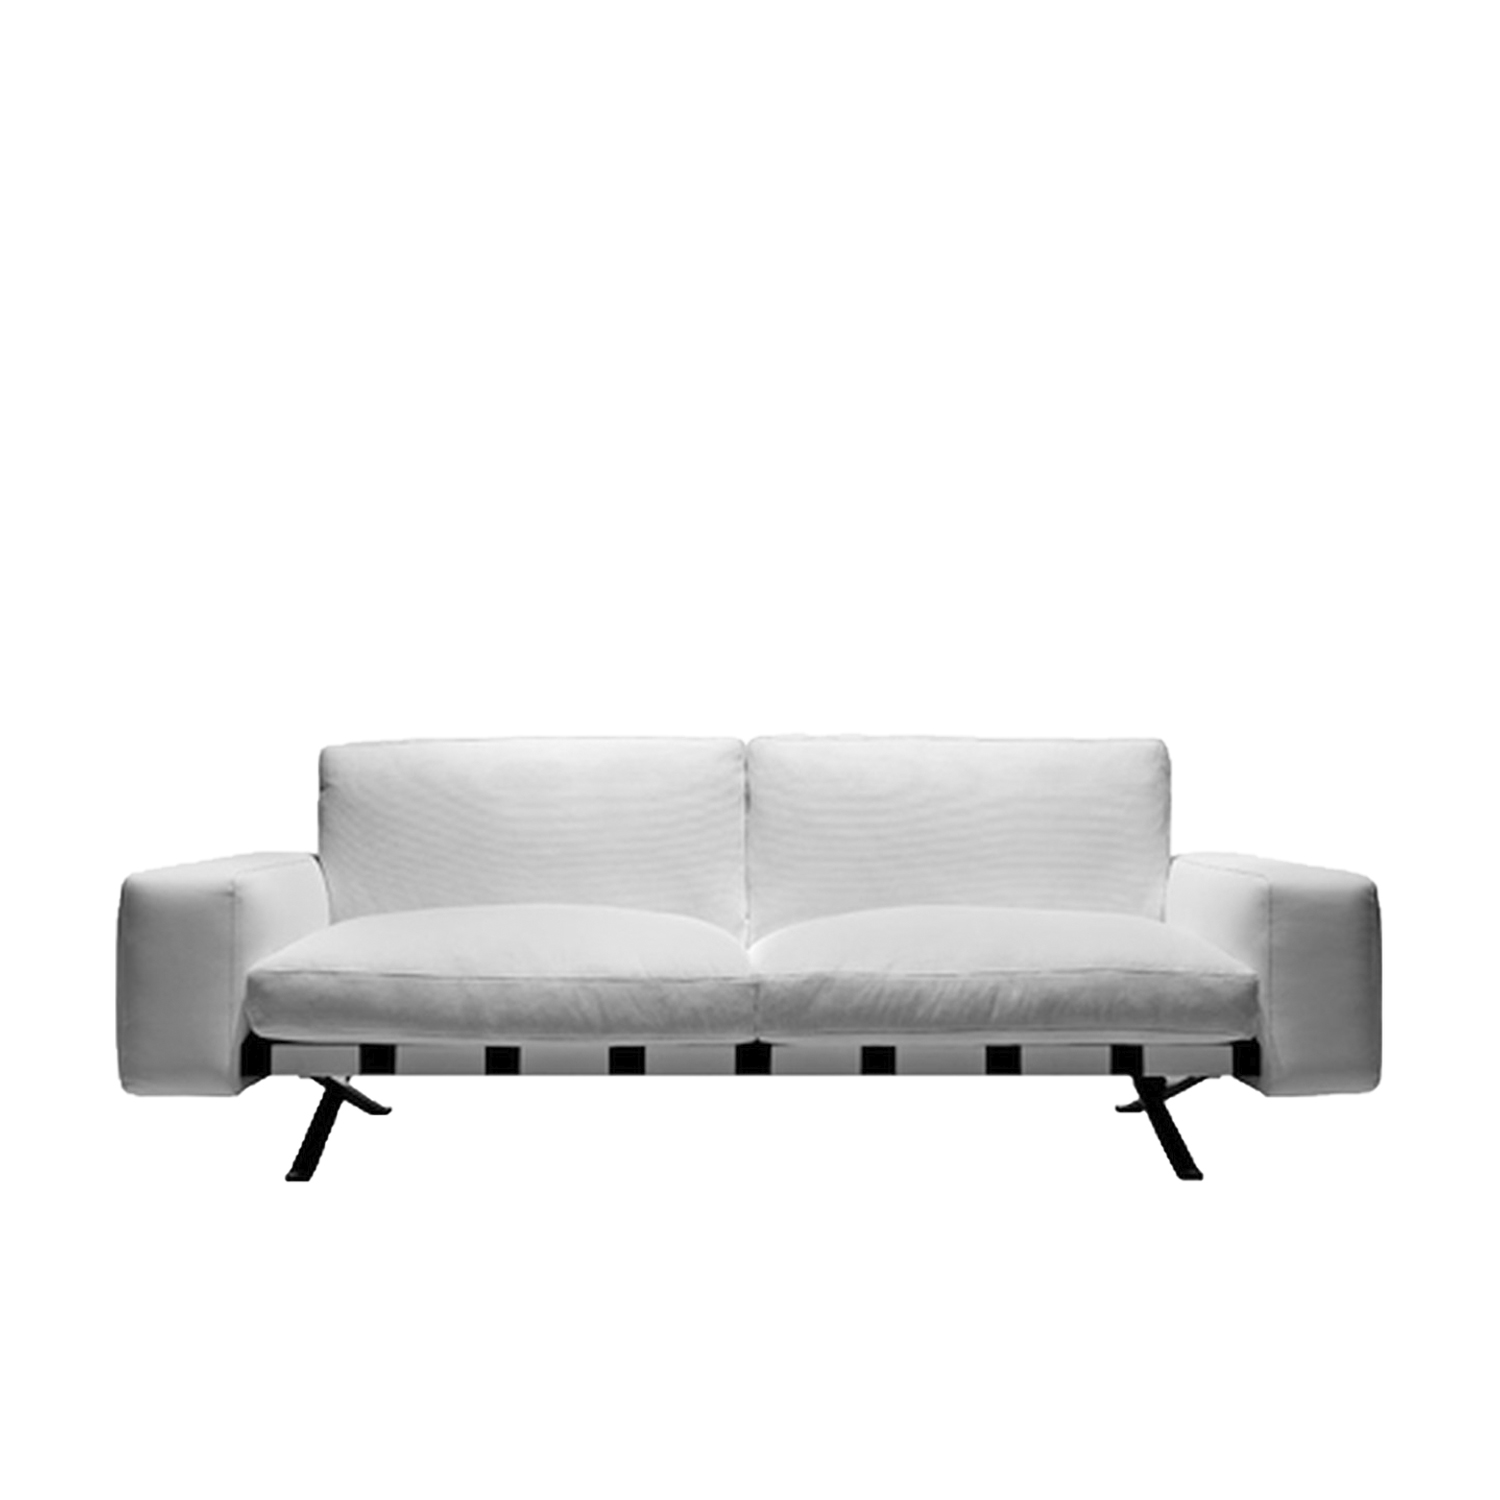 Fenix Two Seater Sofa - The sectional sofa is the theme that has characterized typological design since the 90s of last century. Ludovica and Roberto Palomba confront it, emphasizing the sense of suspension from the ground, thanks to a thin metal structure and developing, in the version with terminals, a great peninsula from the gracefully asymmetric shape. | Matter of Stuff